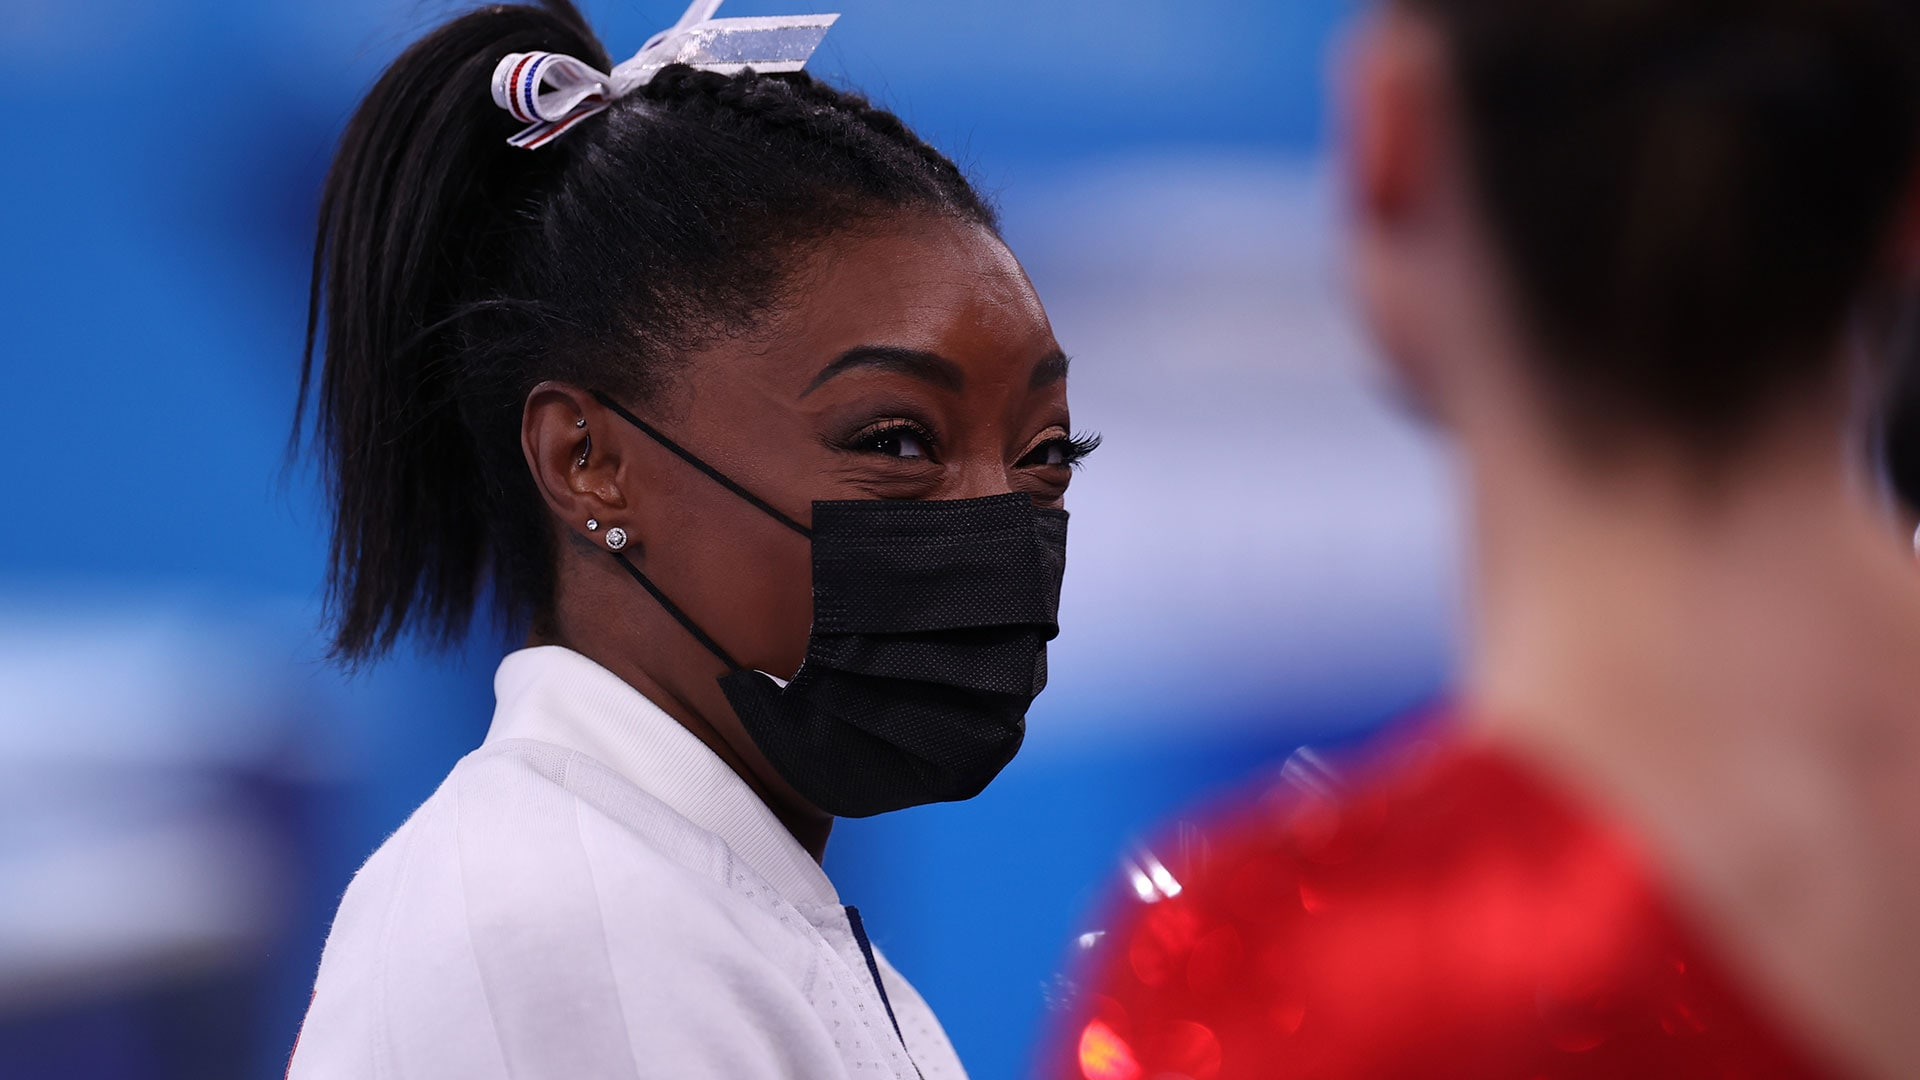 Simone Biles said she is dealing with a